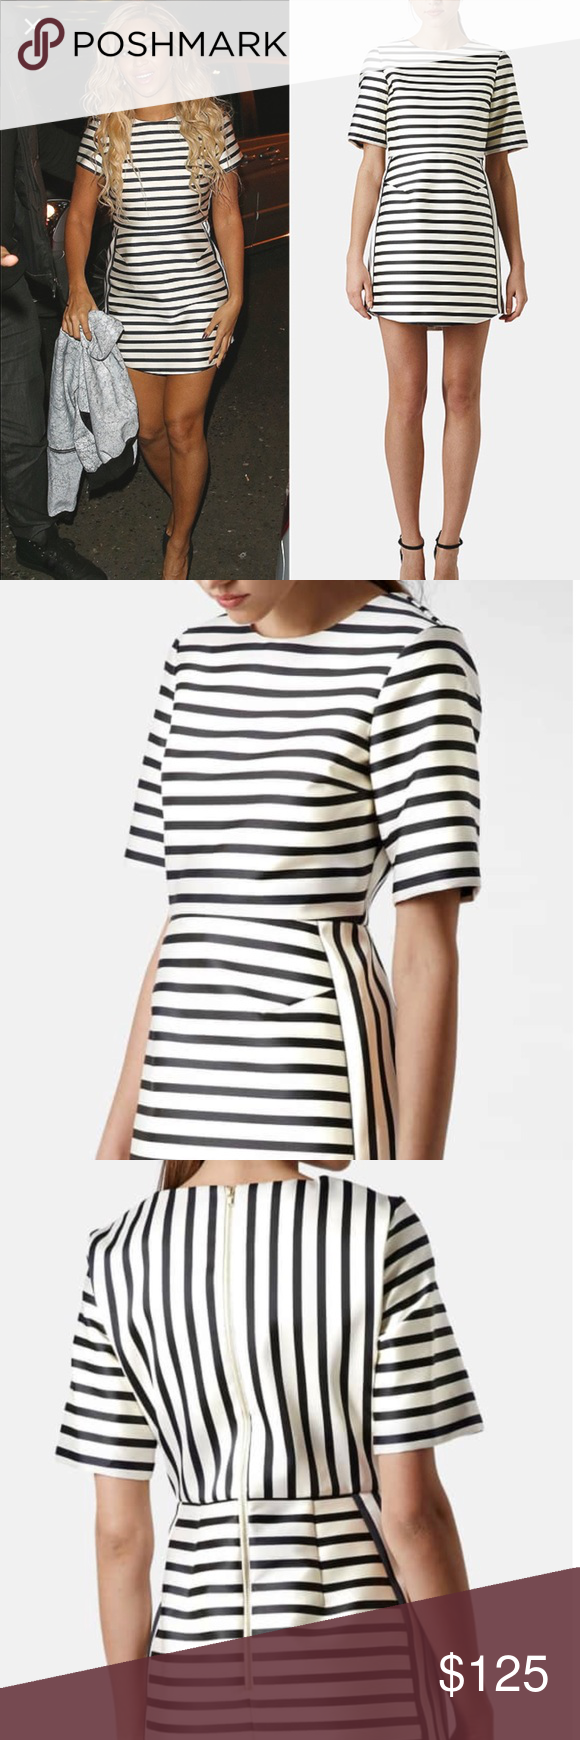 Top A Line Dress Like New Anything Good Enough For Beyoncé Is